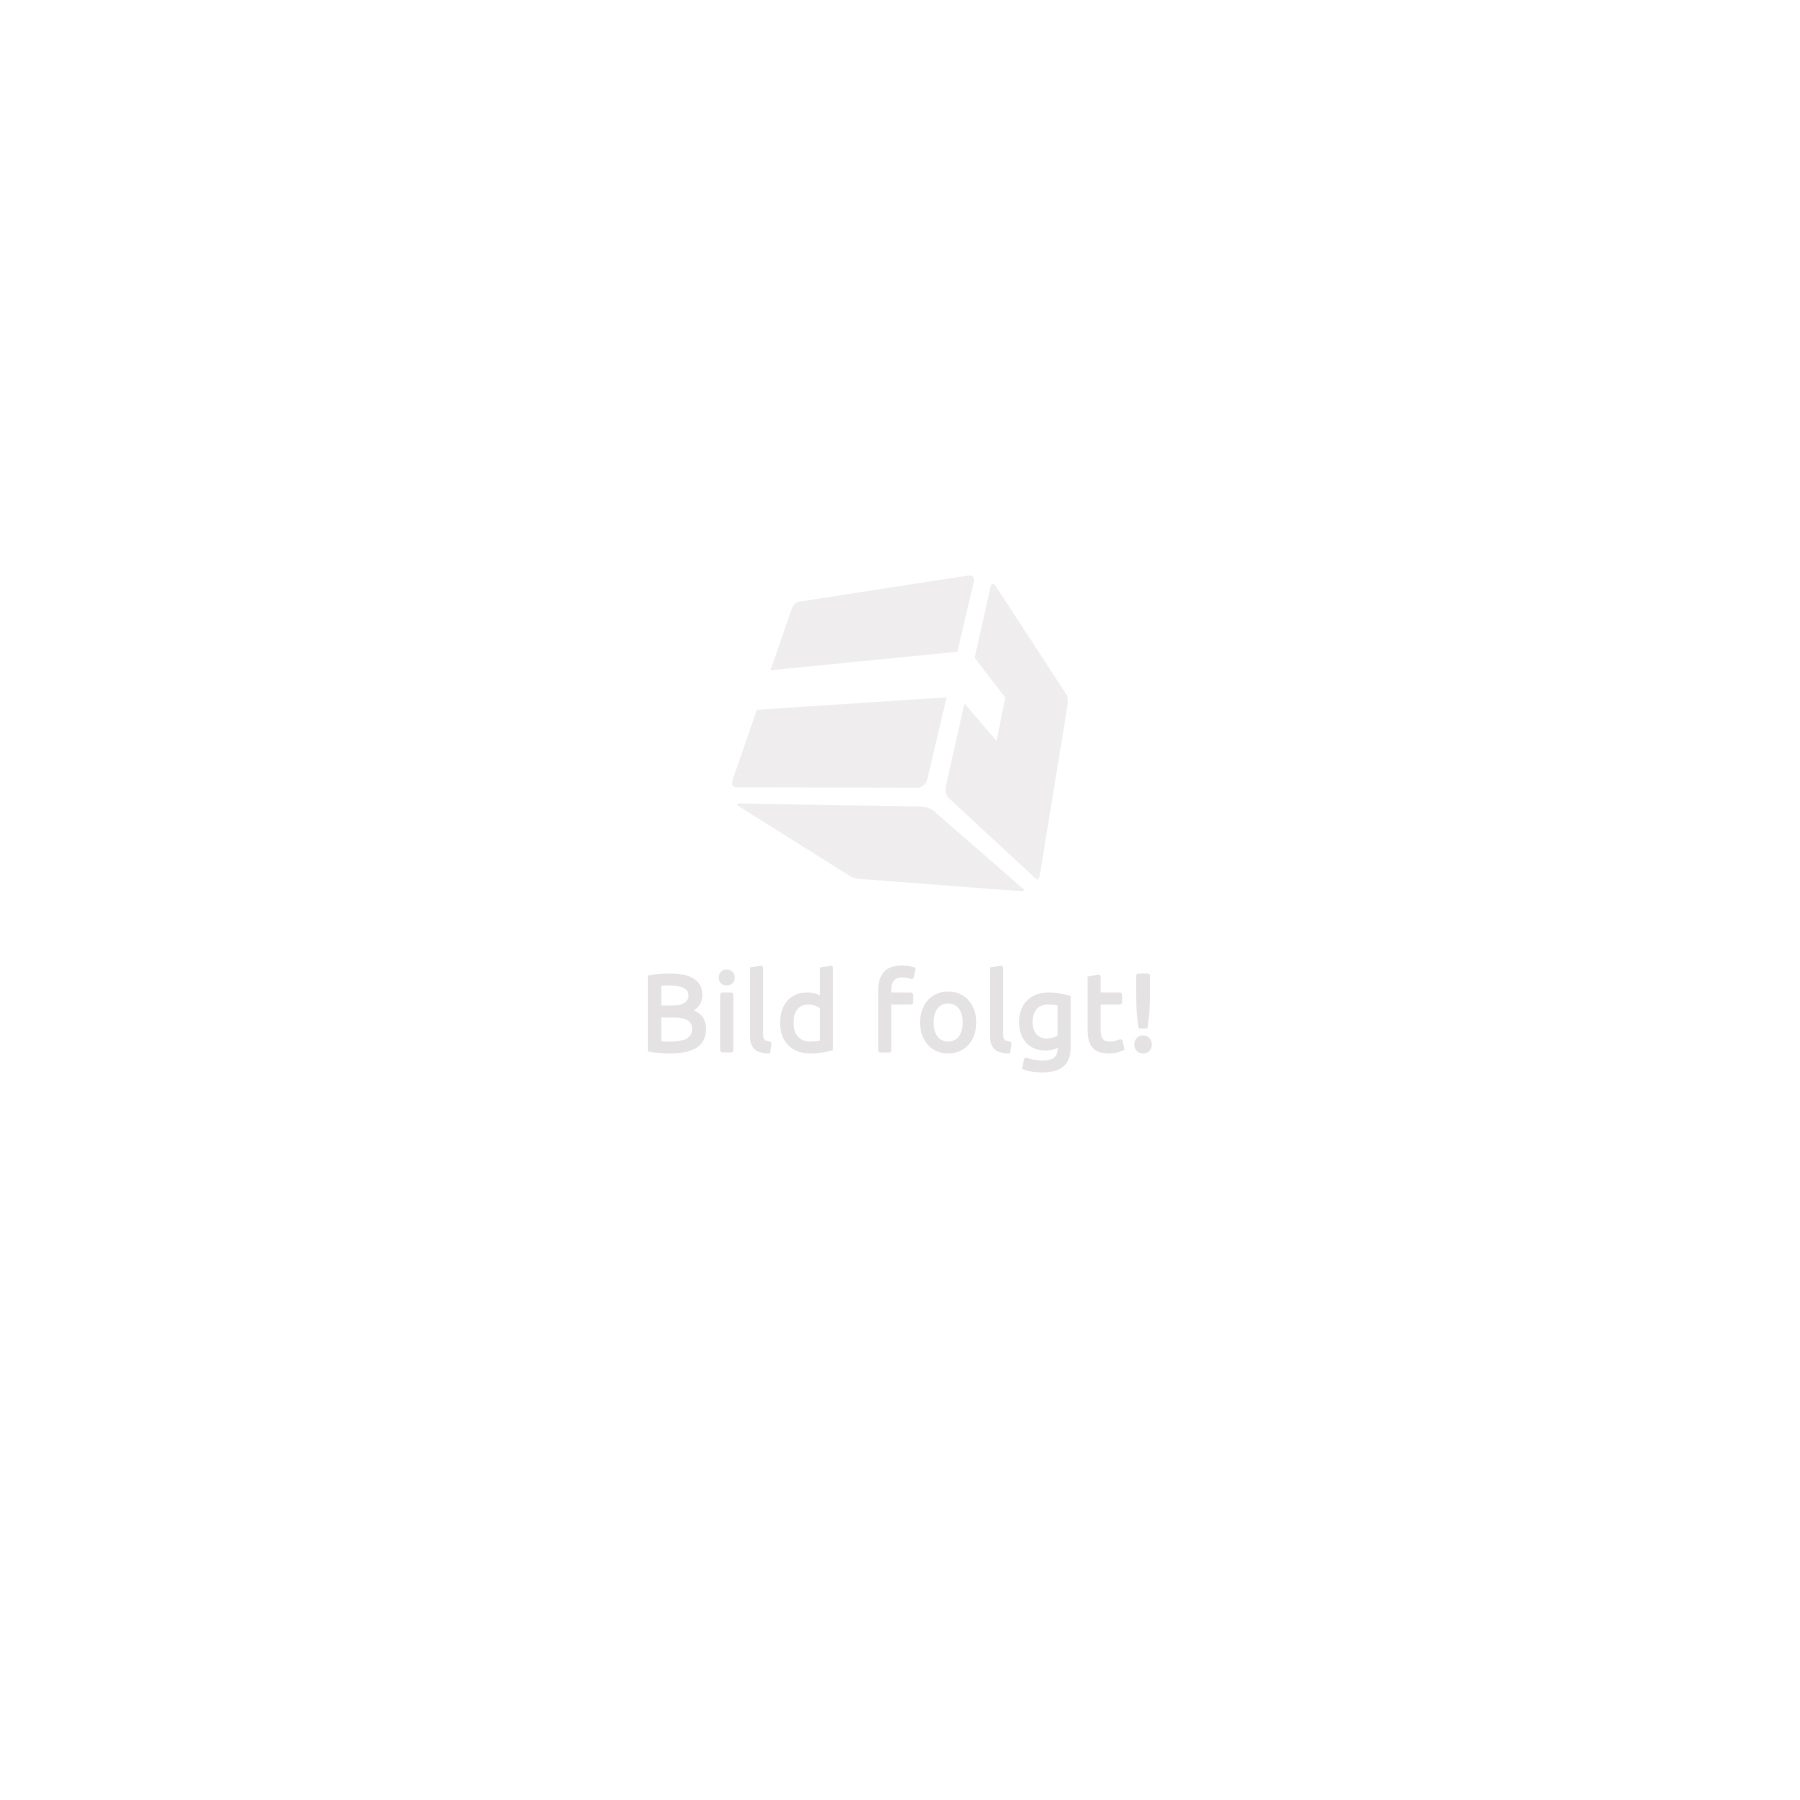 Juicer, steamer - stainless steel AISI 430